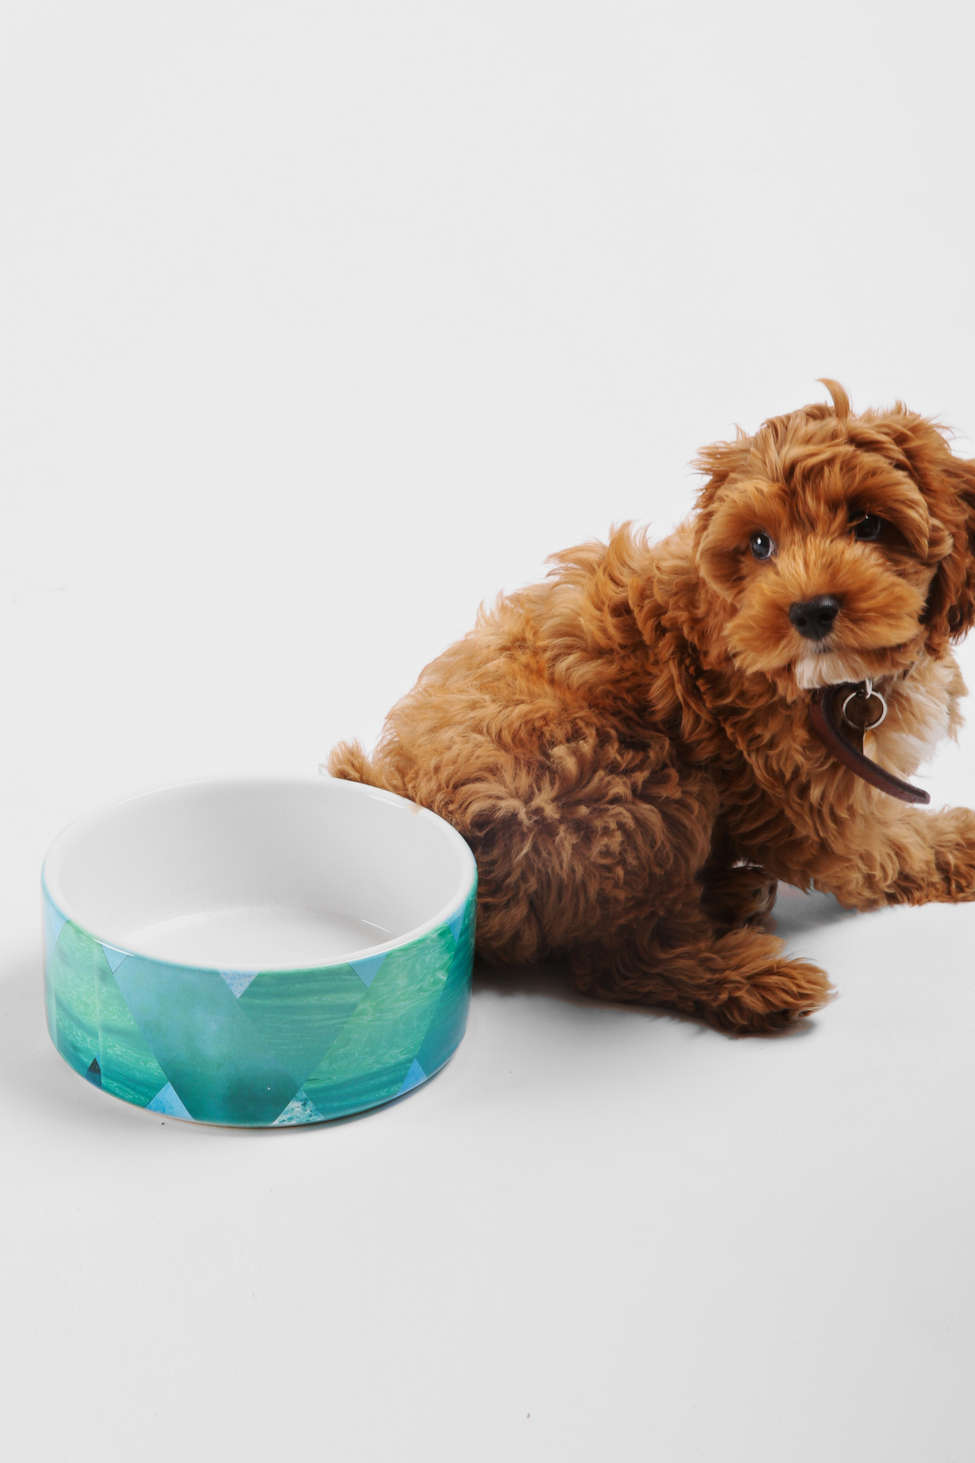 Slide View: 1: Kei Ivor For Deny Pet Bowl Set